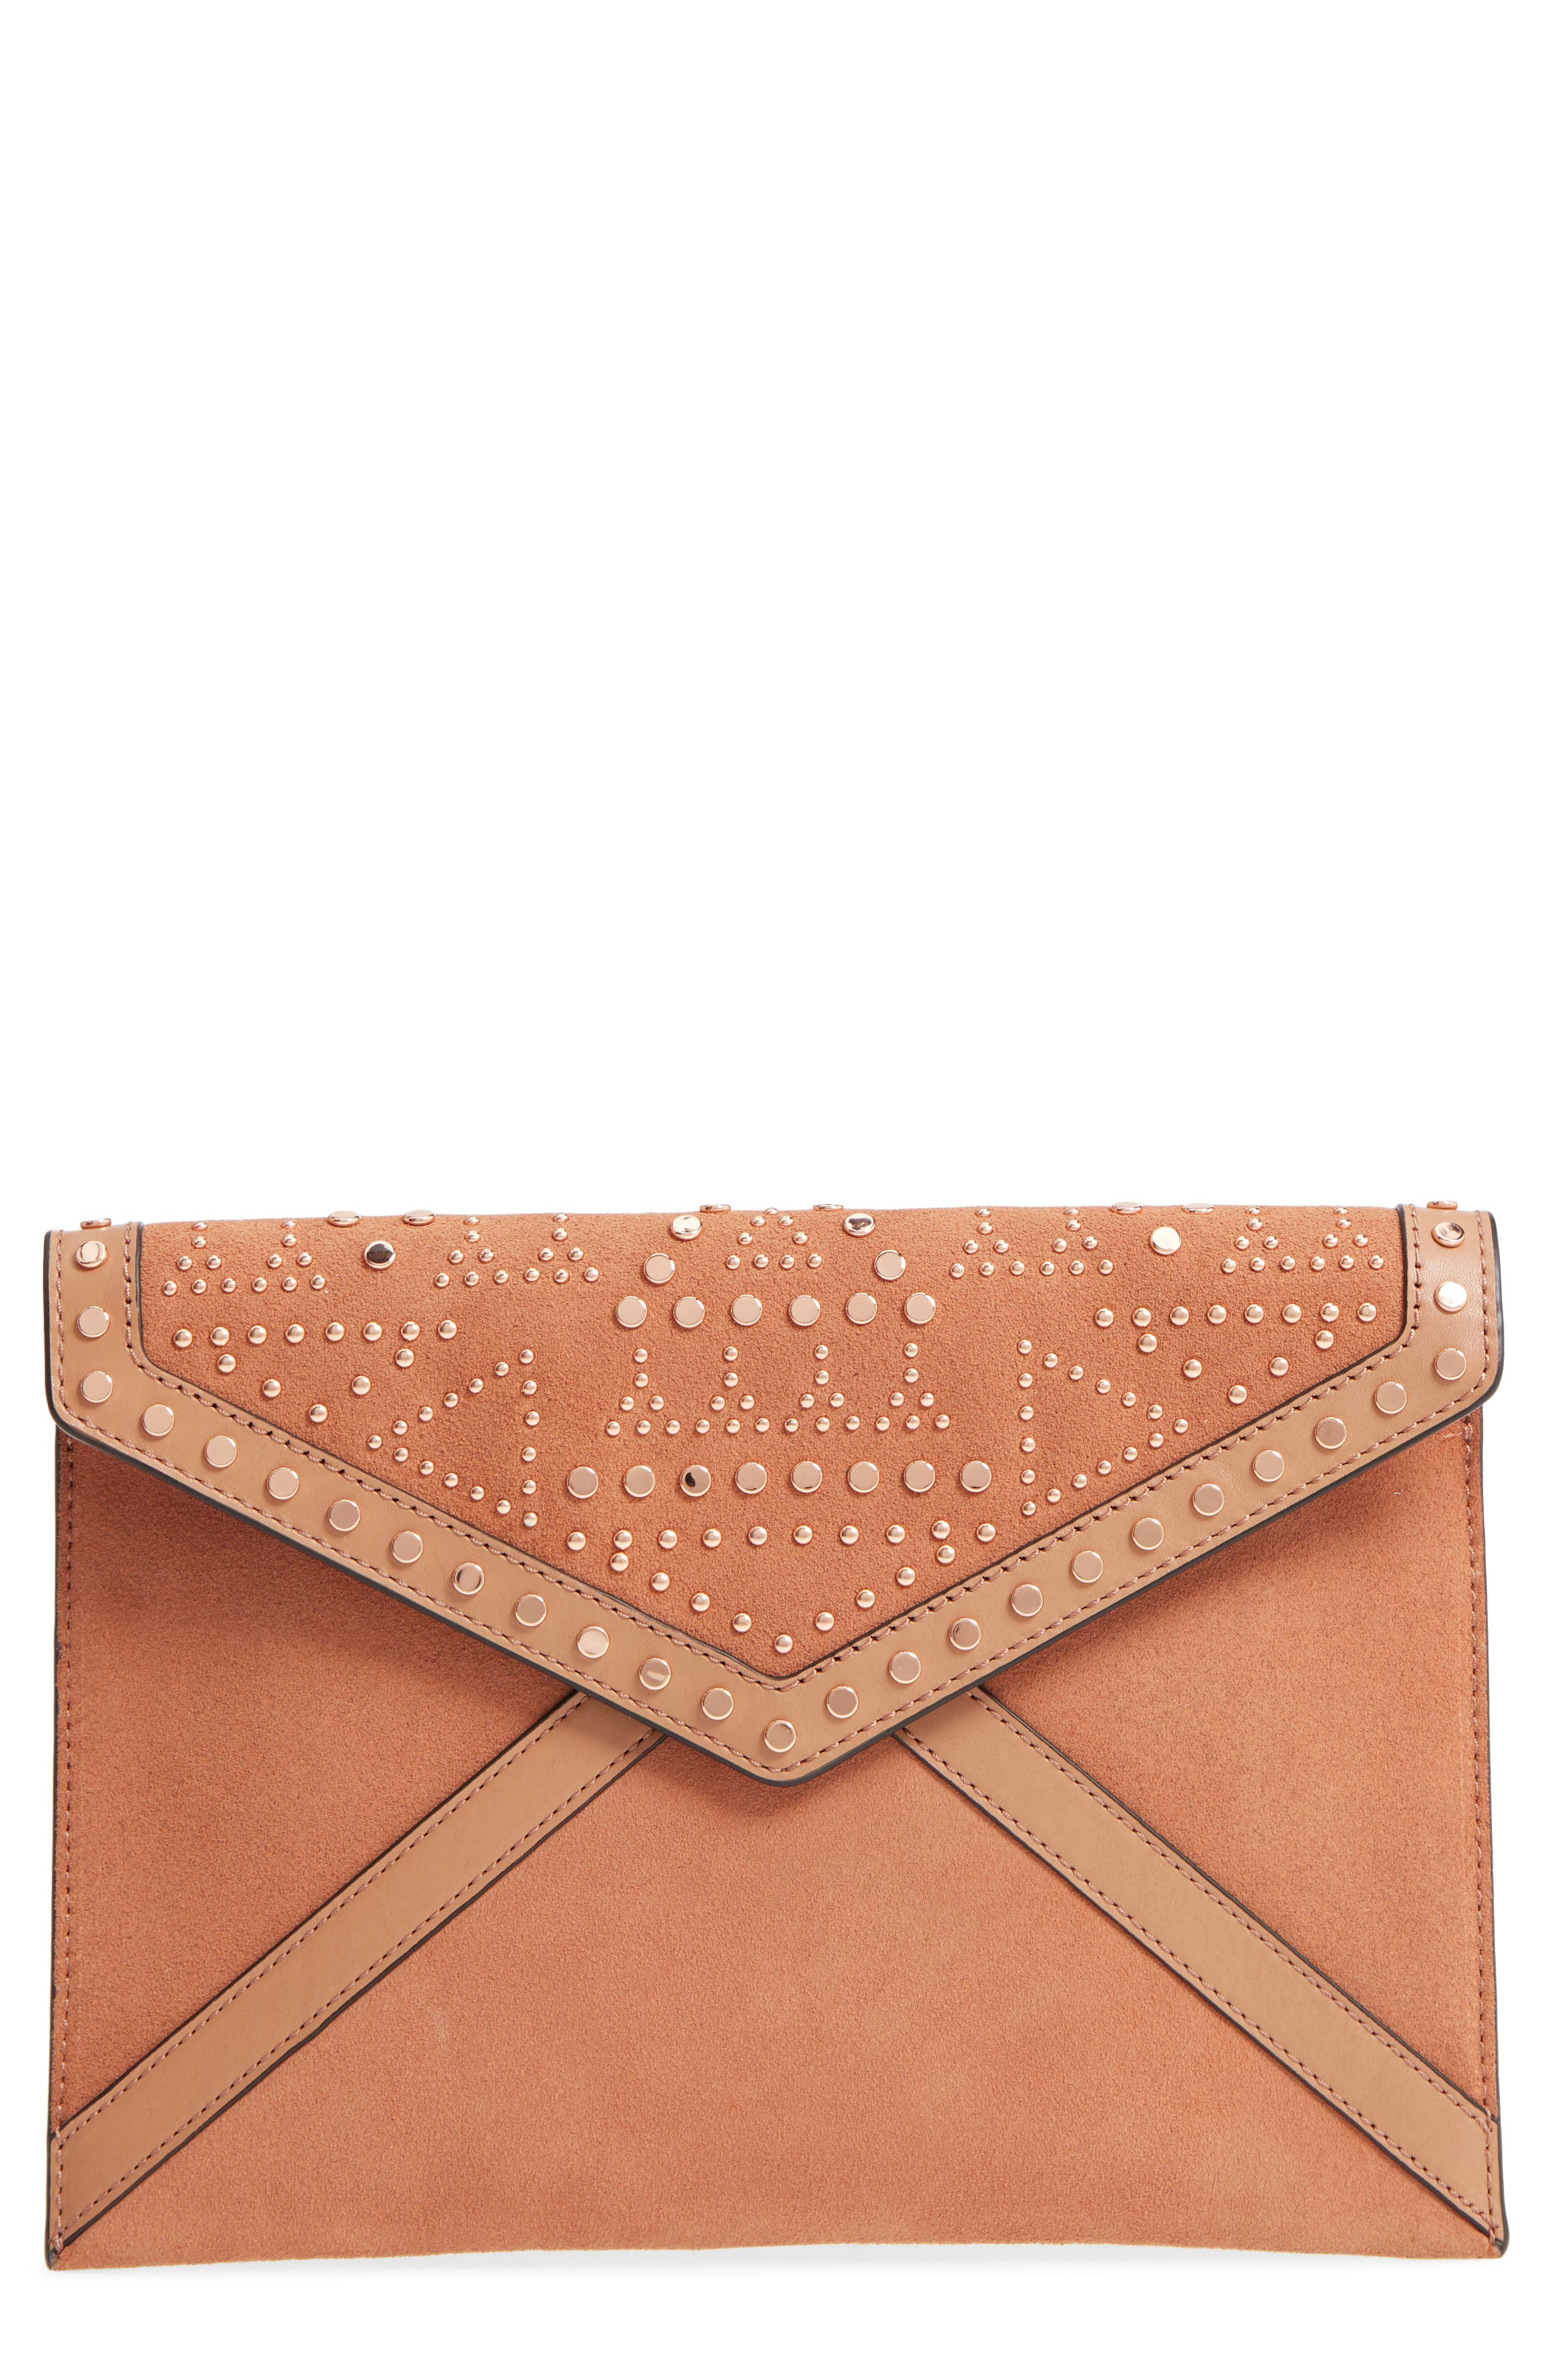 Leo Studded Leather & Suede Clutch,                         Main,                         color, 250